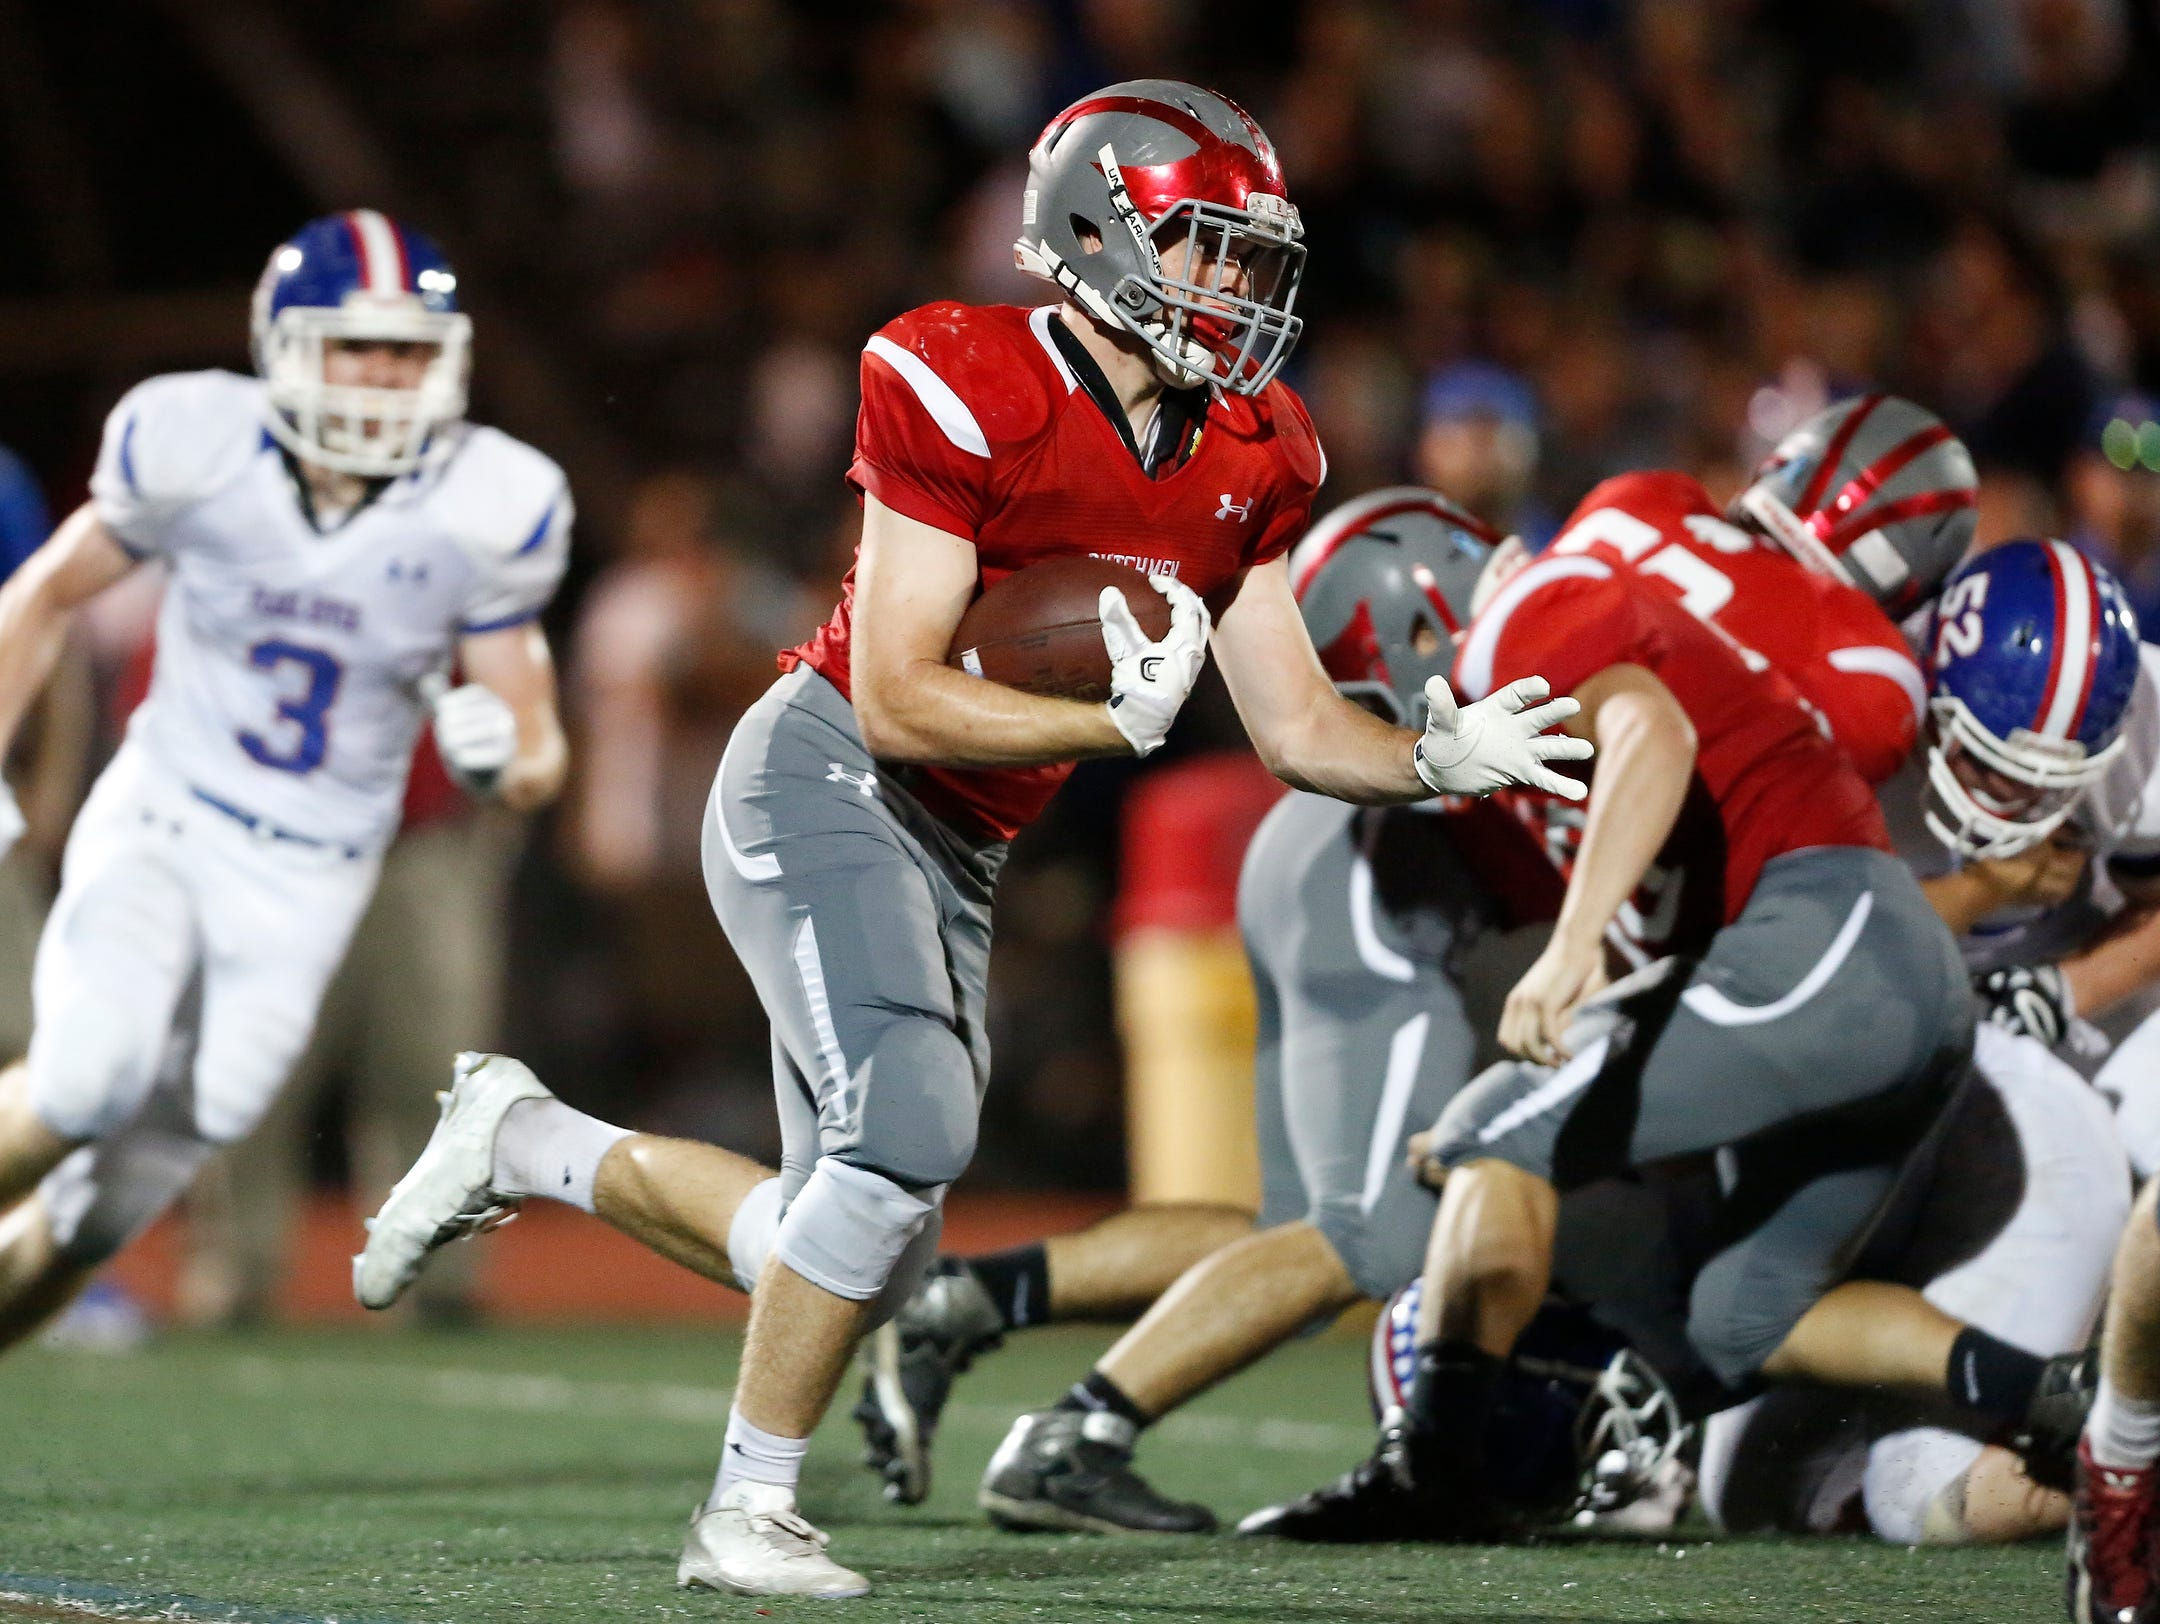 Tappan Zee's Nick Violetto (1) gets the carry during football action at Tappan Zee High School in Orangeburg on Friday, September 23, 2016. Tappan Zee won 25-7.